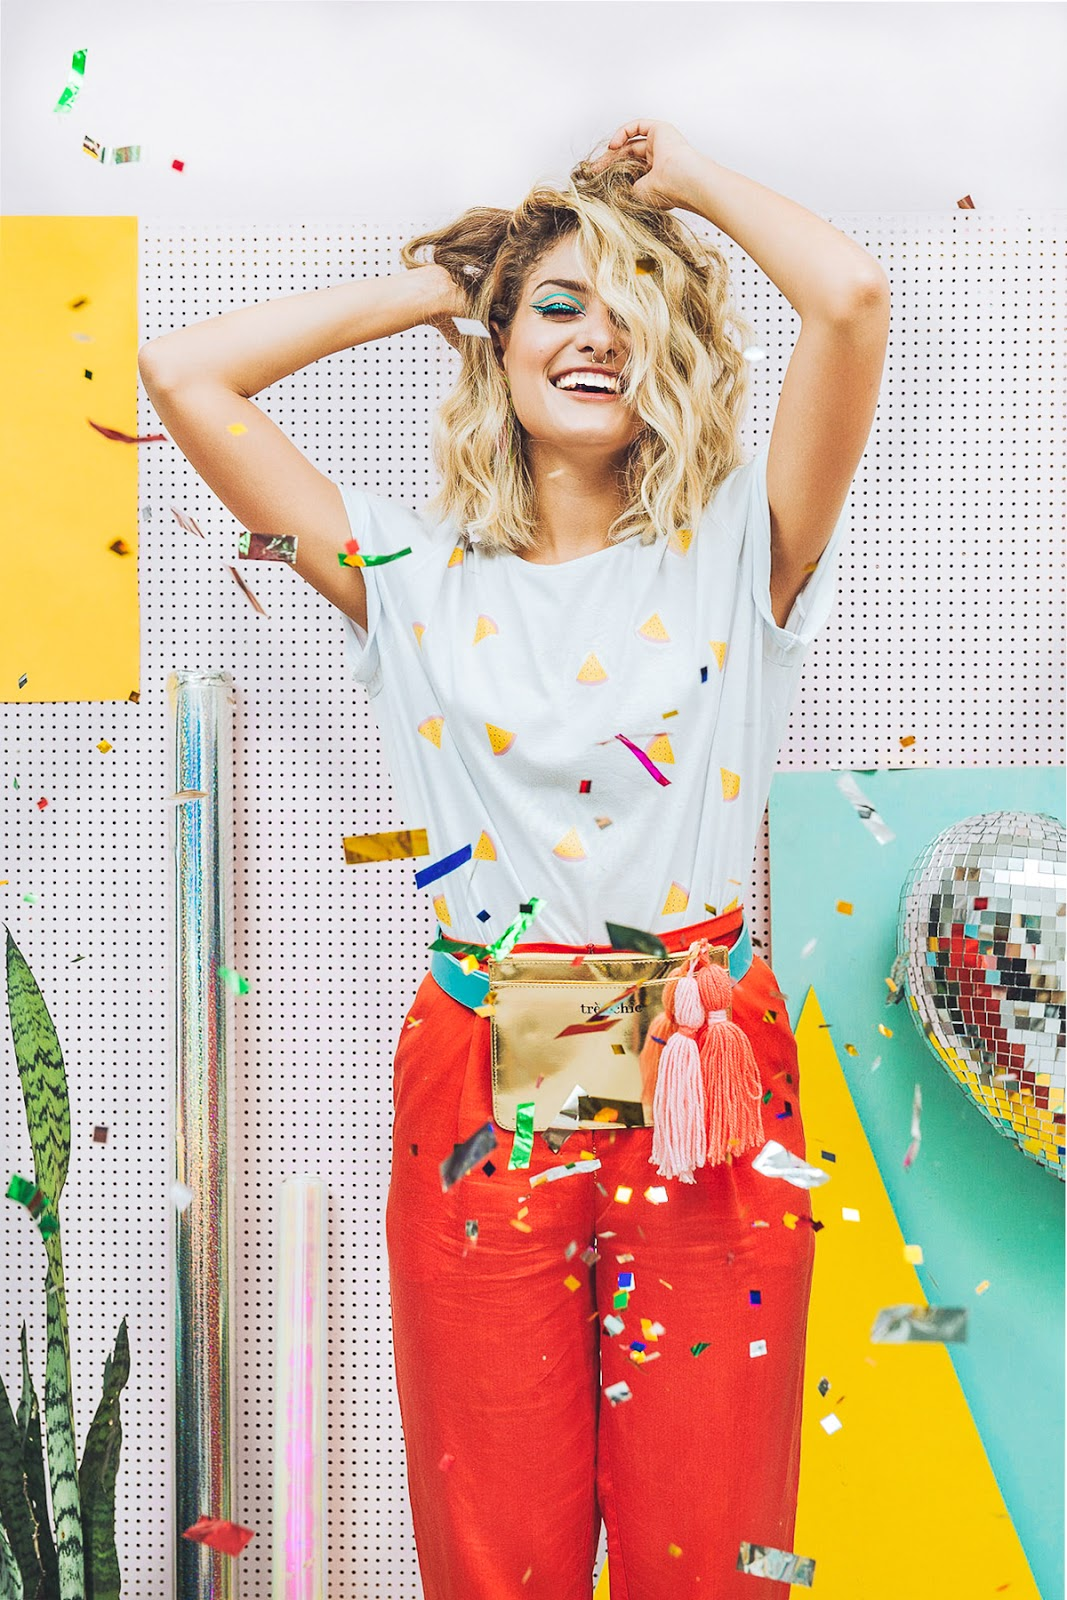 CARNAVAL DIY CUSTOMIZACAO LOOK BLOG DO MATH MANUELA GOMES